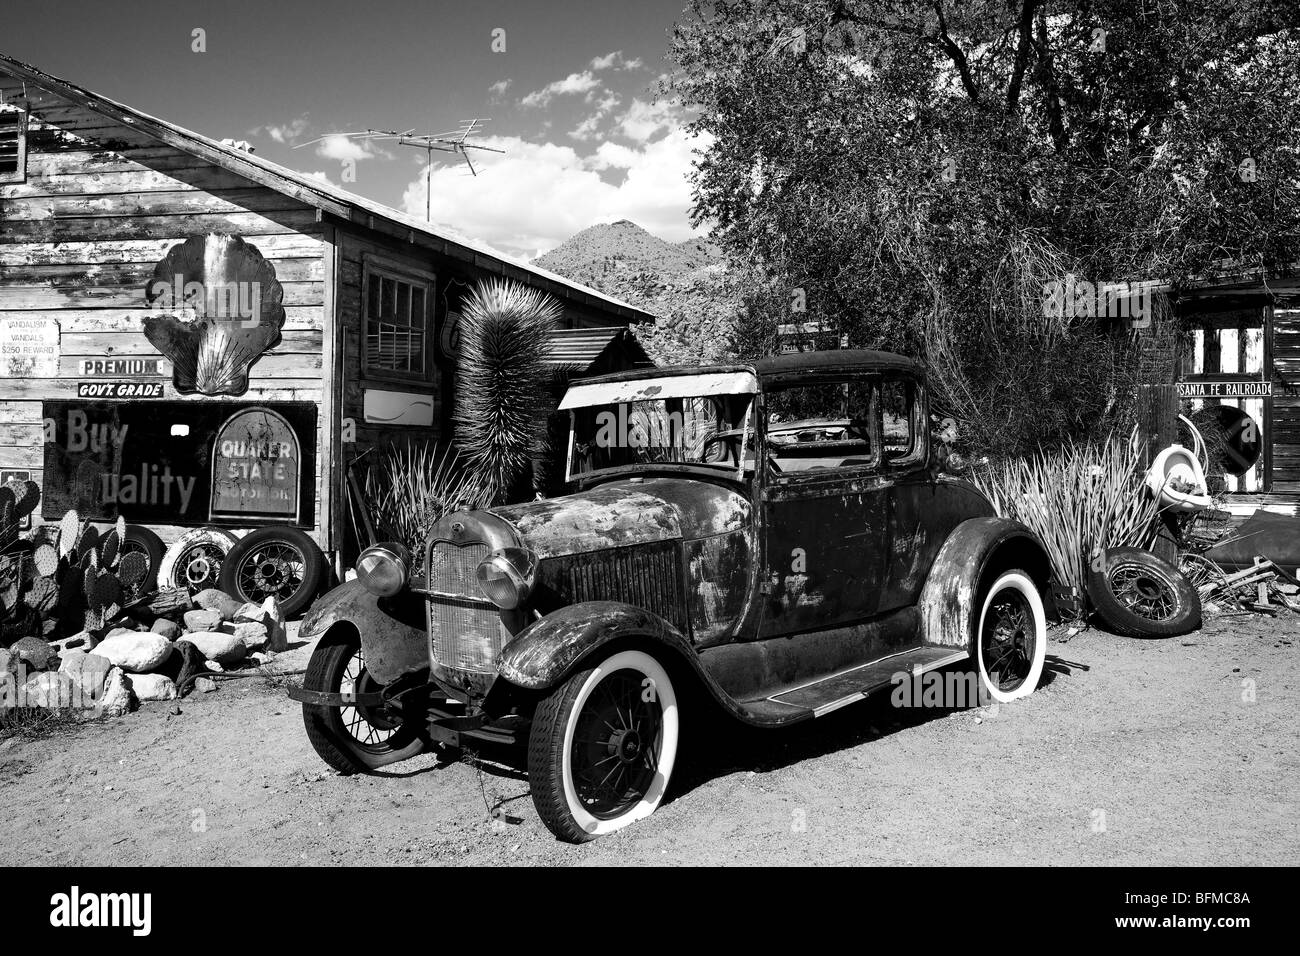 Old looking black and white photo of an old worn car wreck in a ...